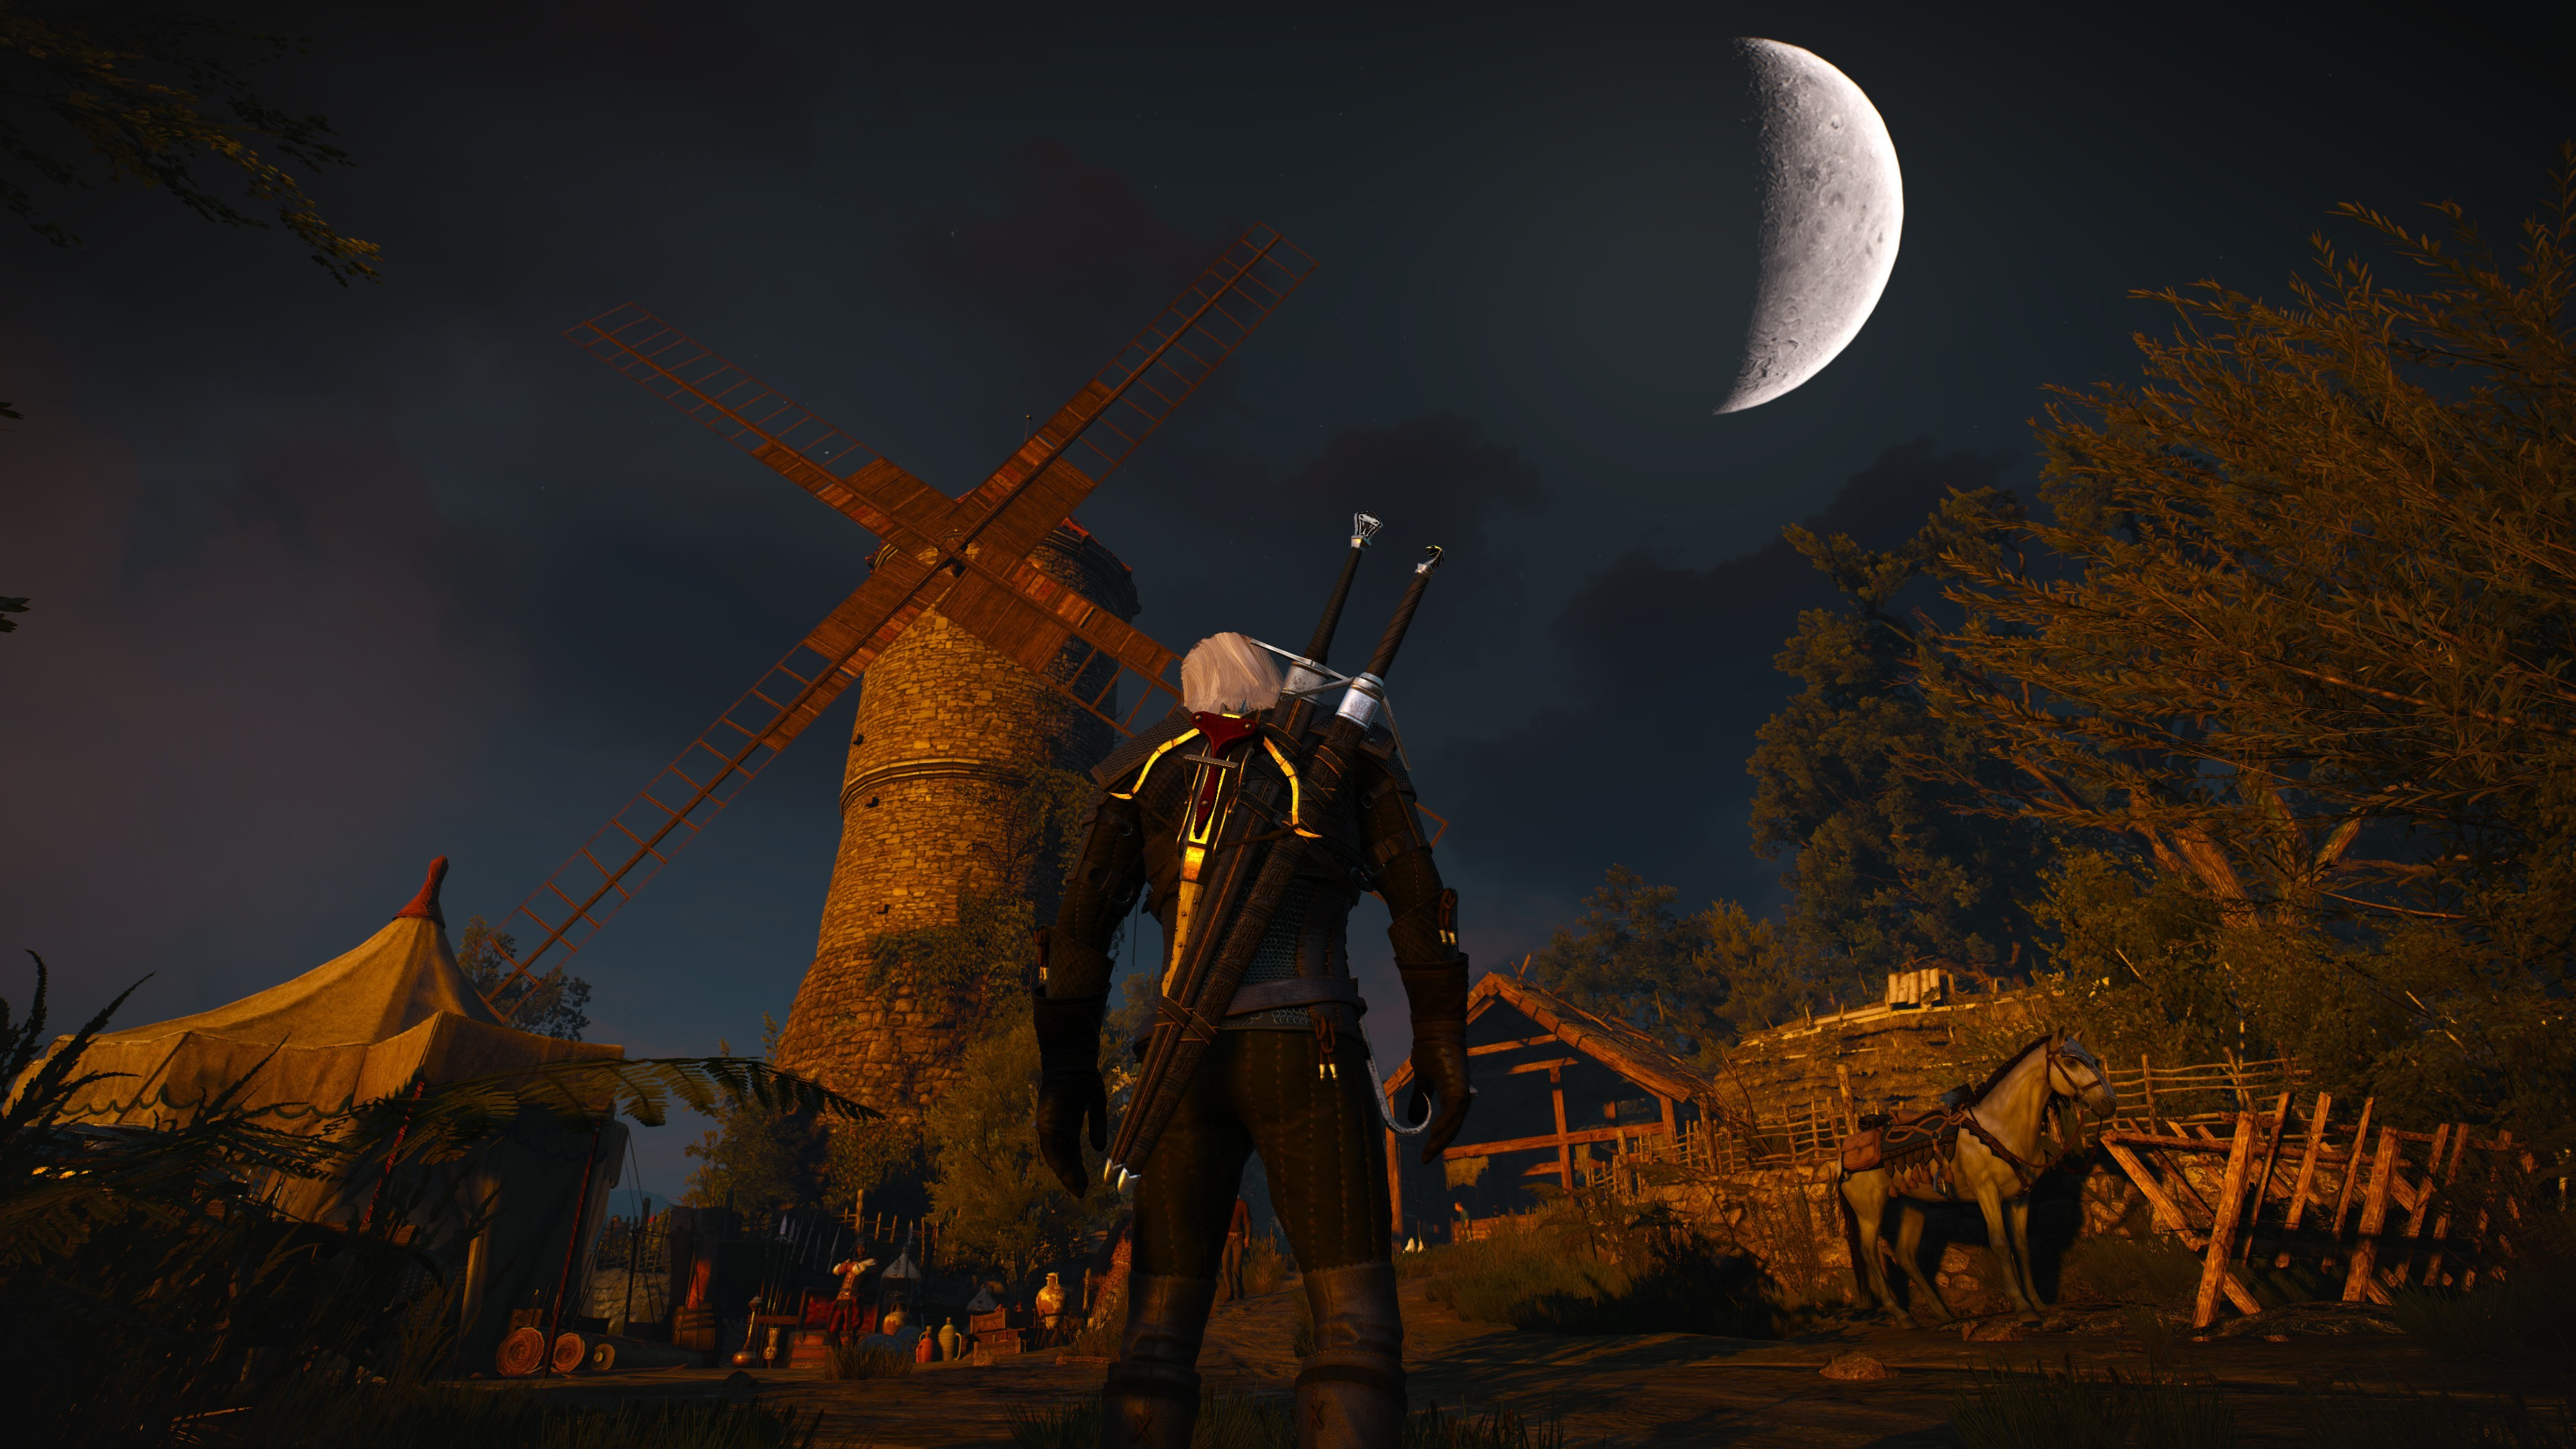 the witcher 3 wild hunt pc game 1536009013 - The Witcher 3 Wild Hunt Pc Game - xbox games wallpapers, the witcher 3 wallpapers, ps4 games wallpapers, pc games wallpapers, games wallpapers